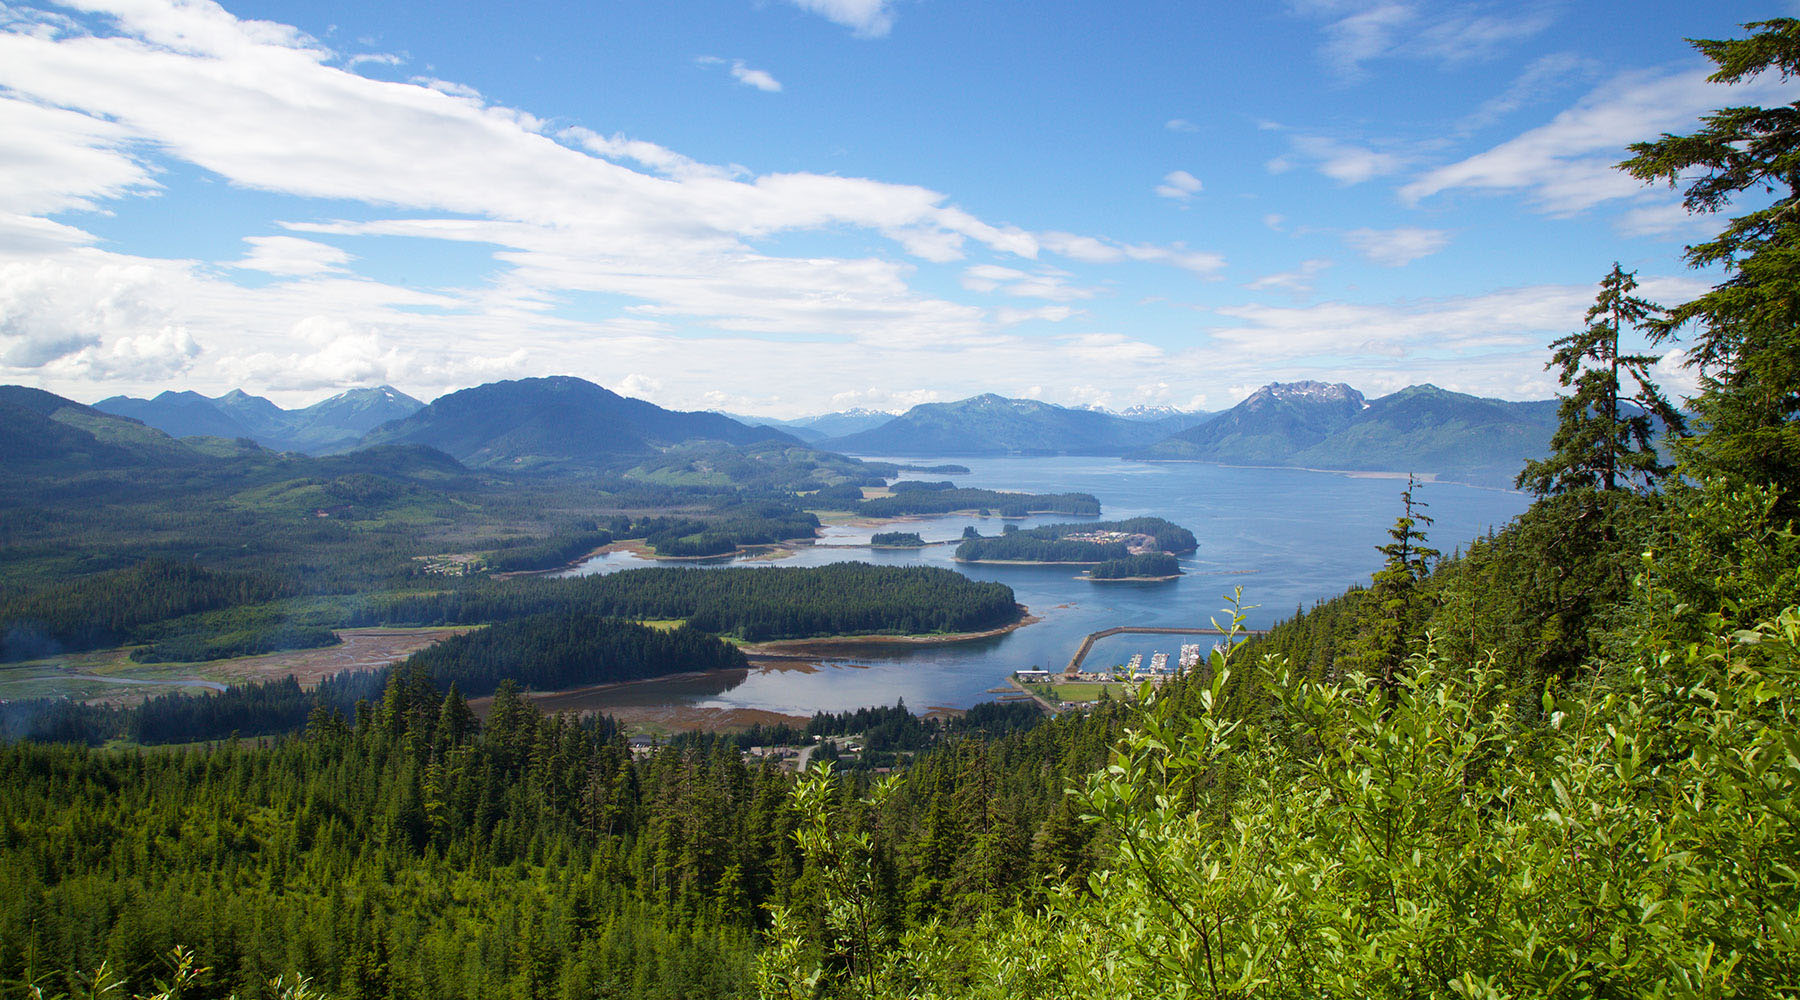 10-NIGHT ALASKA INTENSIVE VOYAGE